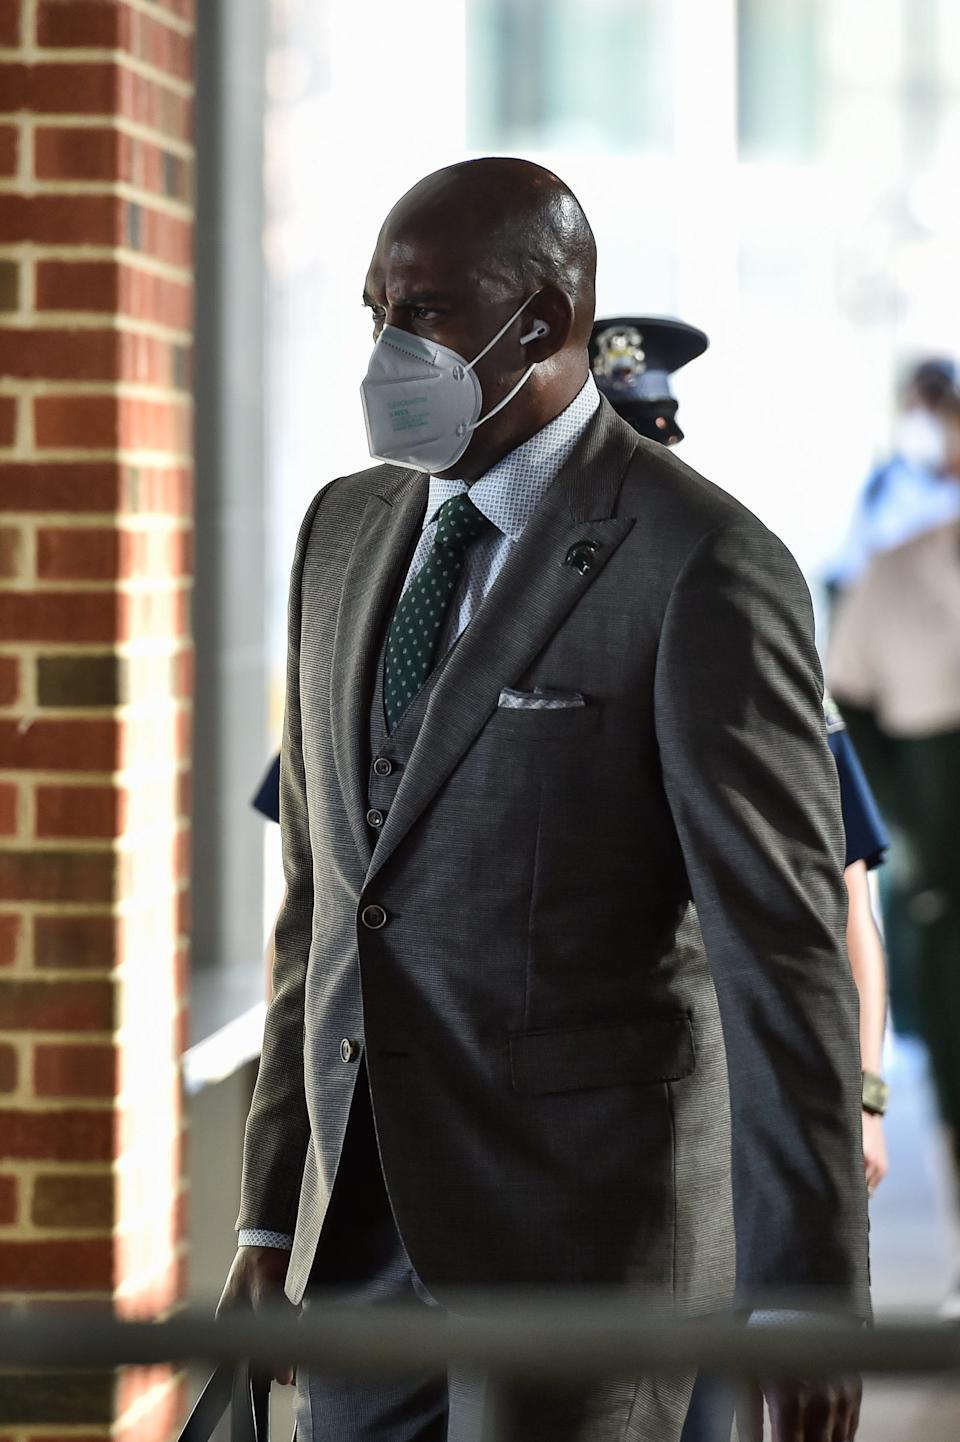 Michigan State coach Mel Tucker enters Kinnick Stadium before the game against Iowa on Saturday, Nov. 7, 2020, in Iowa City, Iowa.